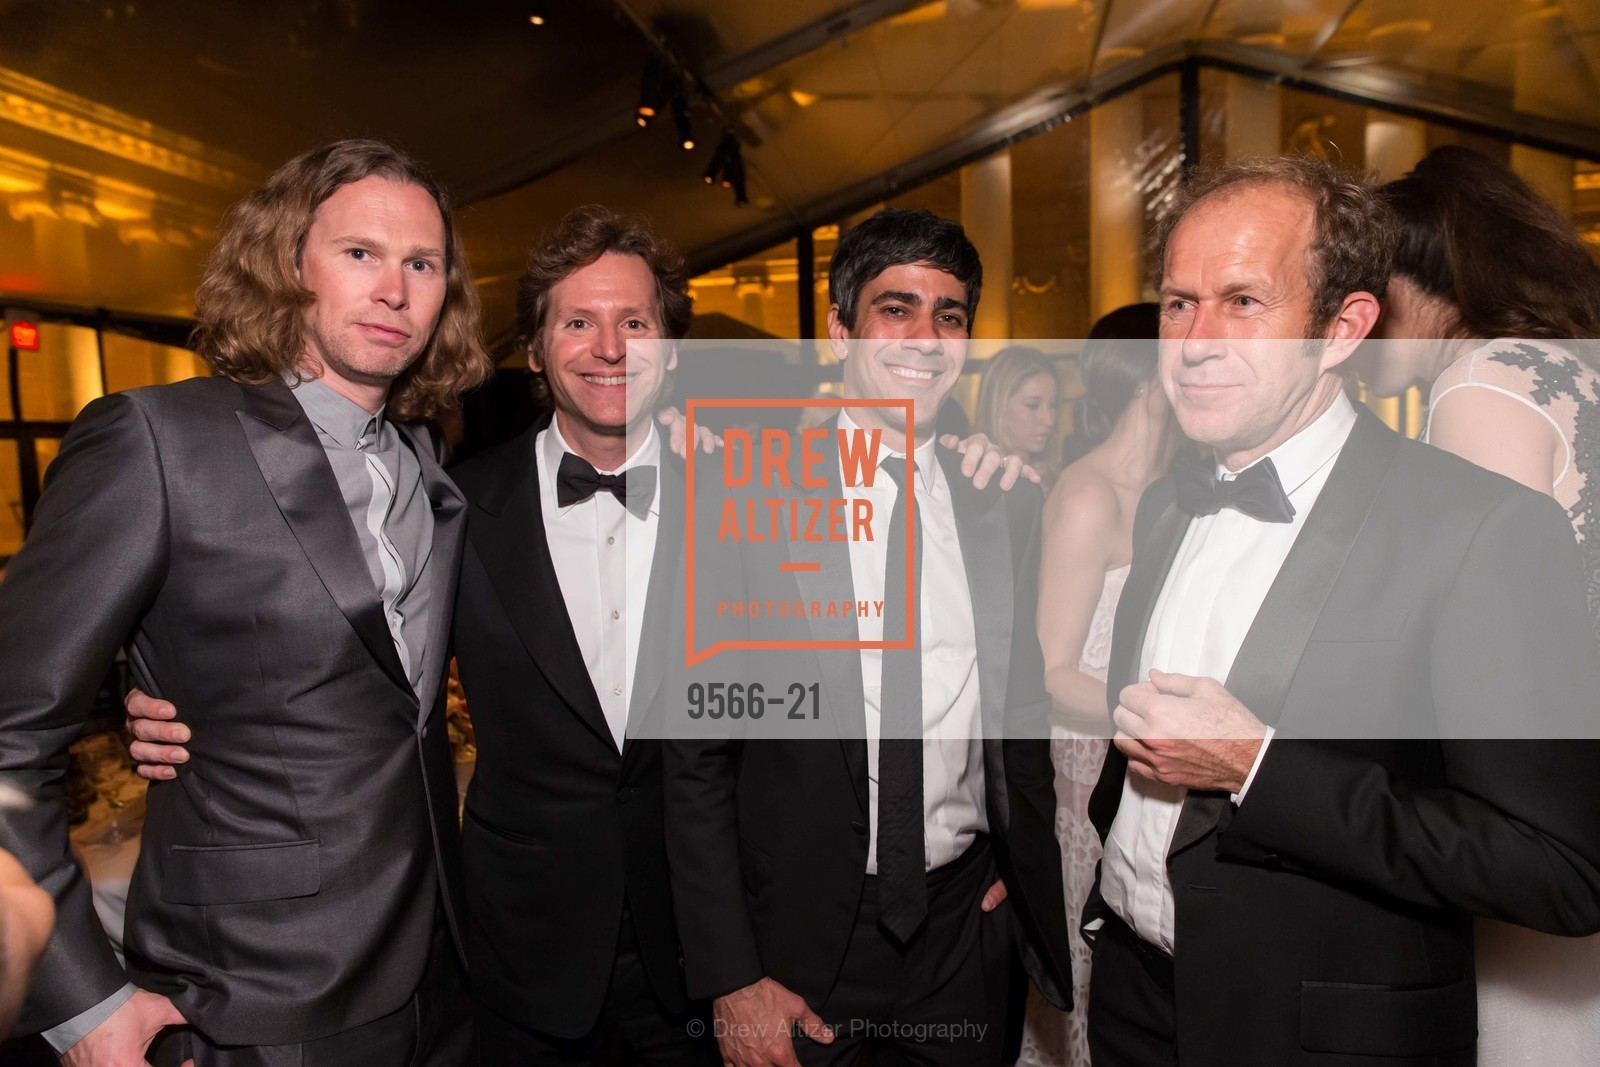 Michael Birch, Trevor Traina, Jeremy Stoppelman, Paul Denez, DIOR and CONDE NAST Sponsor the MidWinter Gala, March 26th, 2015,Drew Altizer, Drew Altizer Photography, full-service event agency, private events, San Francisco photographer, photographer California